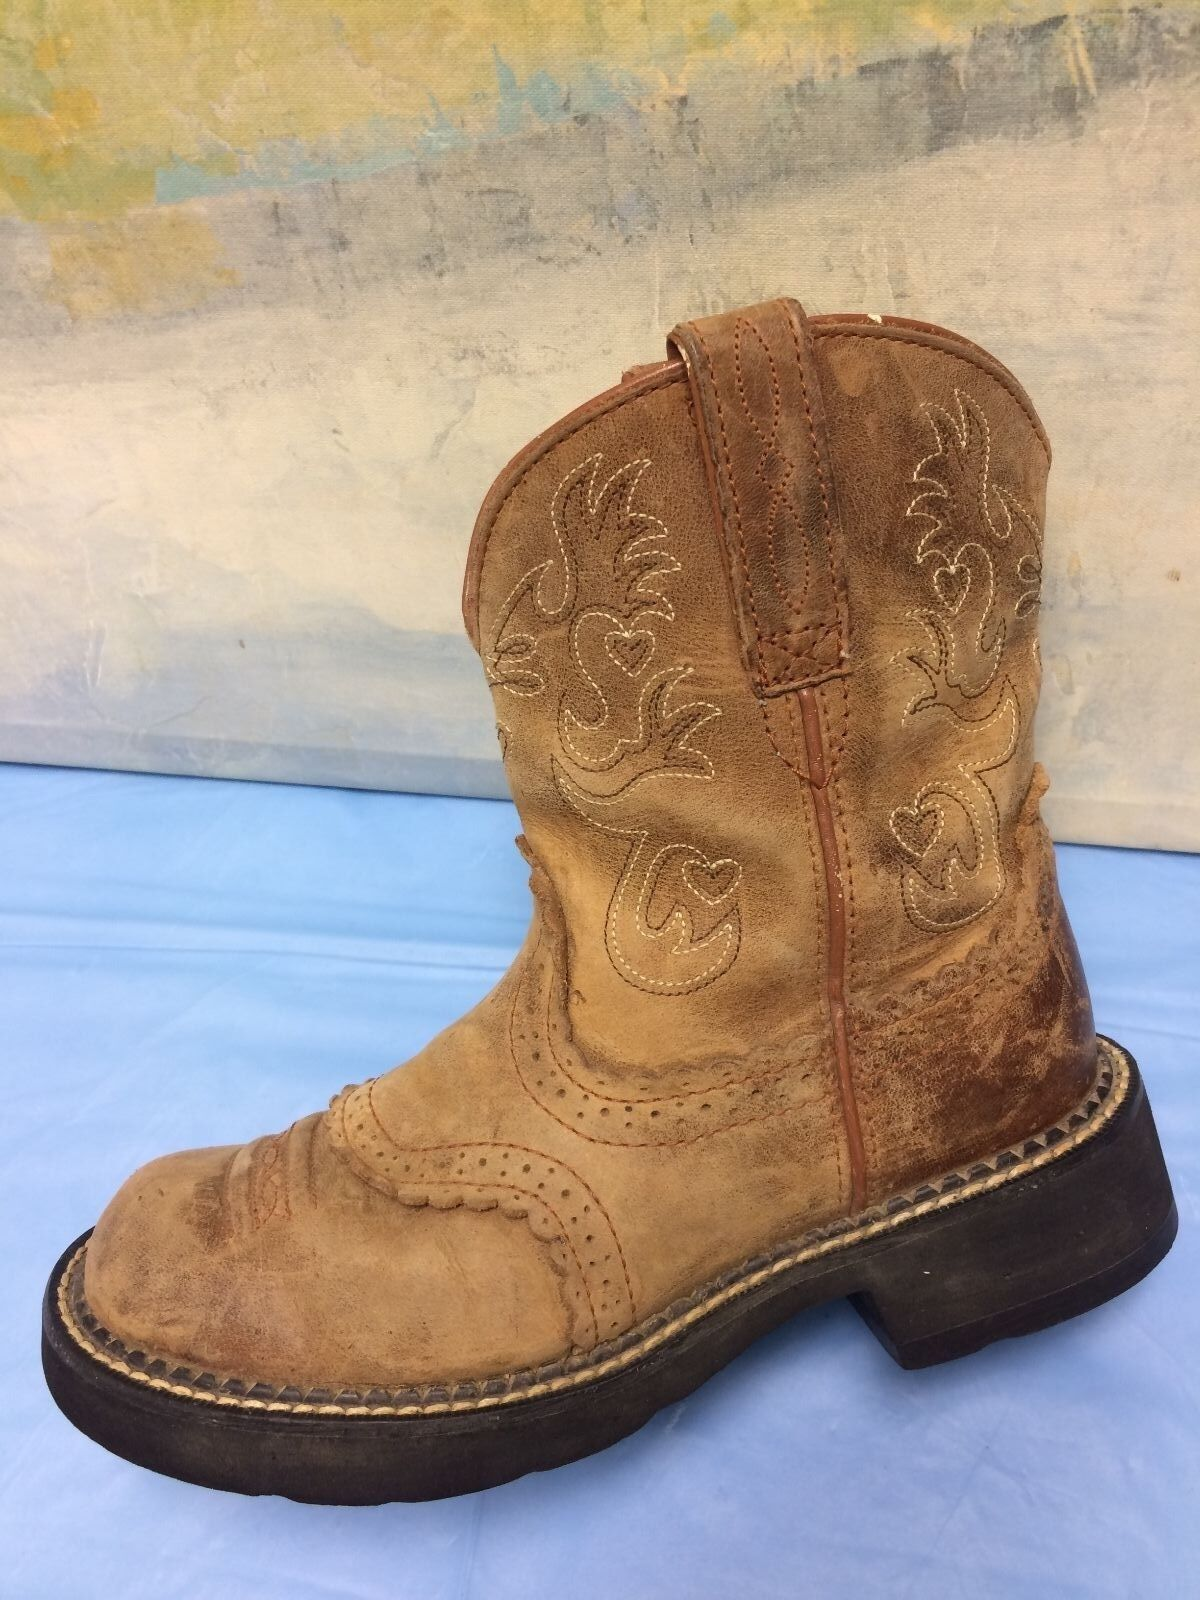 ARIAT Fatbaby marron Western Cowboy bottes •Taille 6.5 B